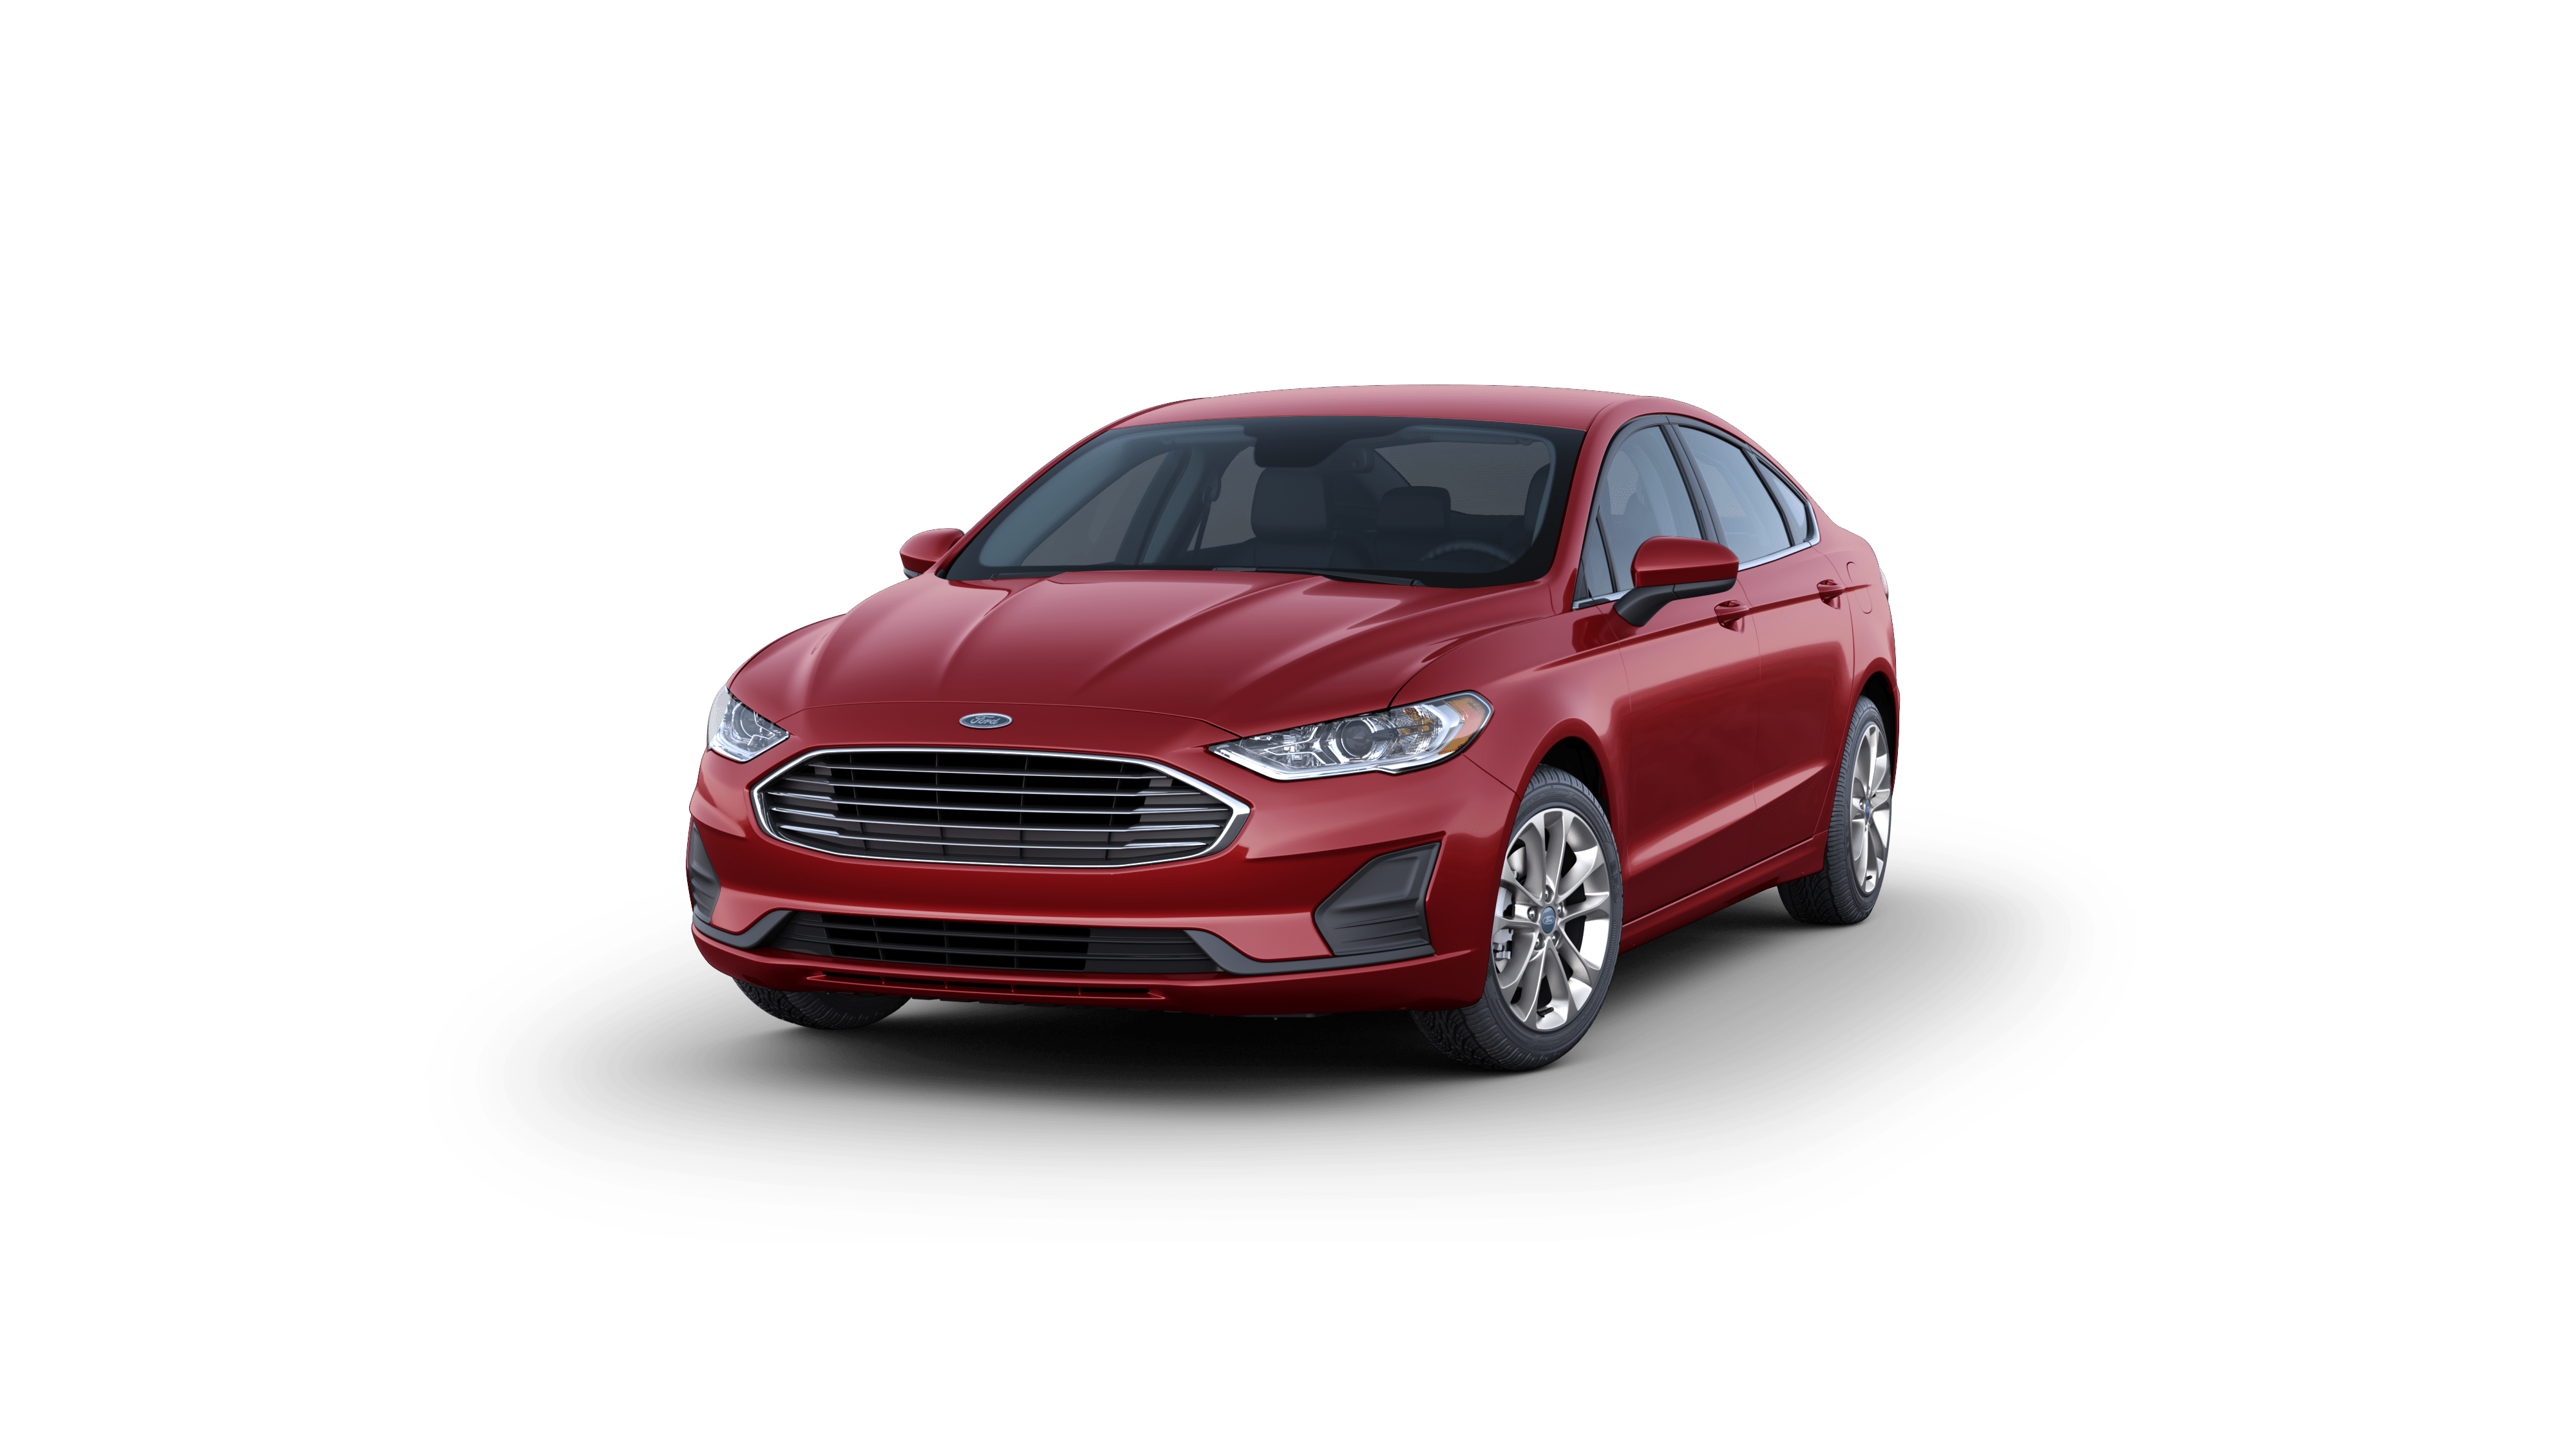 2020 Ford Fusion for sale in Marshall - 3FA6P0HD0LR110747